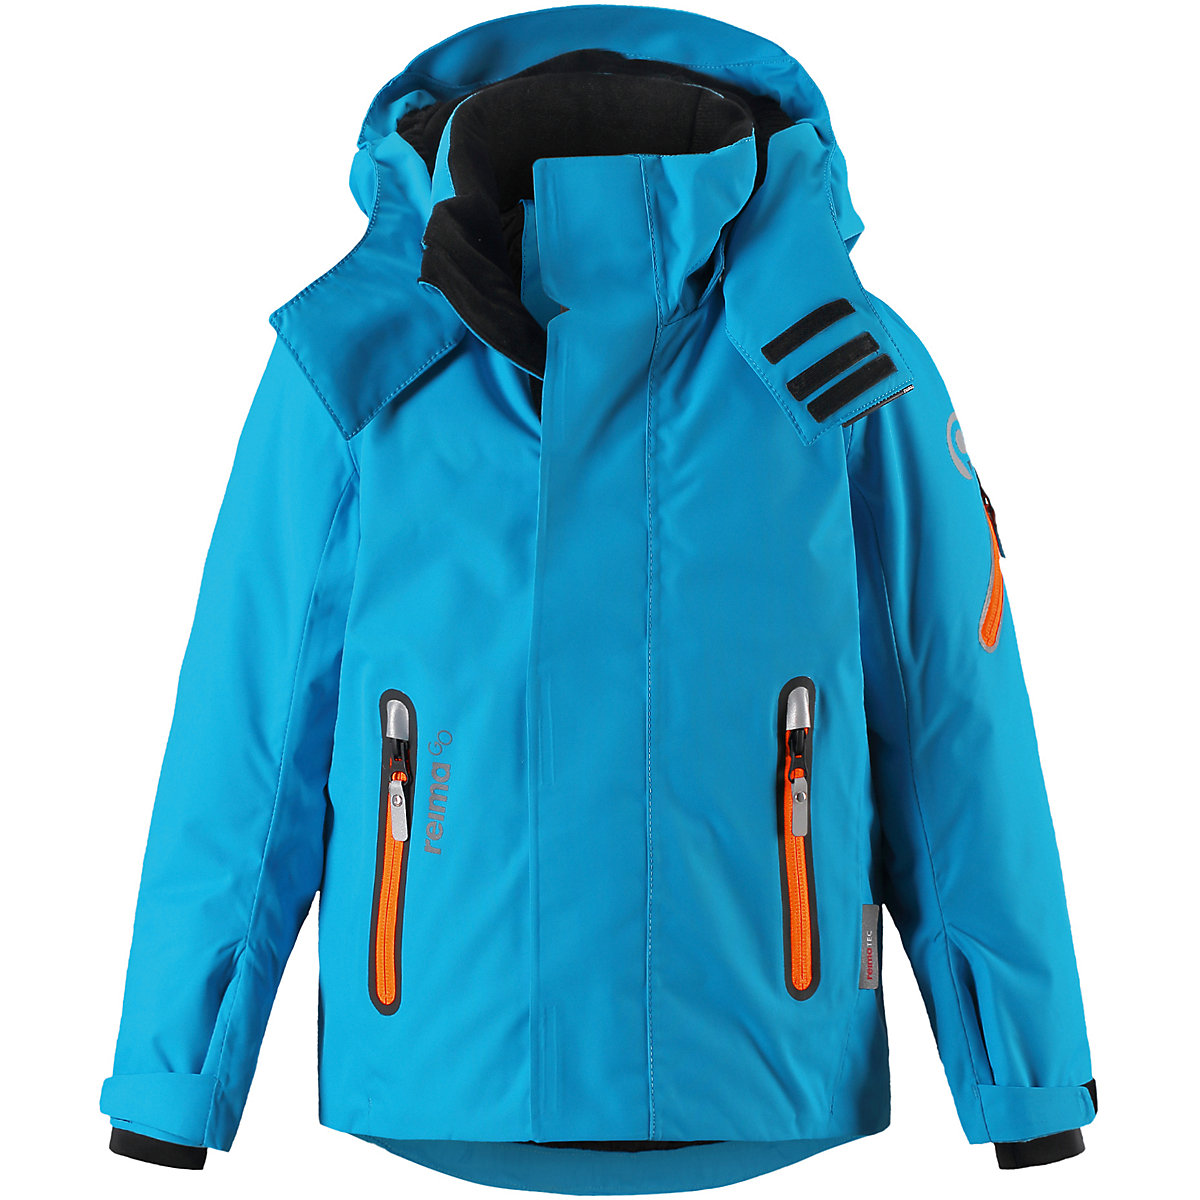 REIMA Jackets & Coats 8689343 for boys baby clothing winter warm boy girl jacket Polyester newborn baby boy girl infant warm cotton outfit jumpsuit romper bodysuit clothes